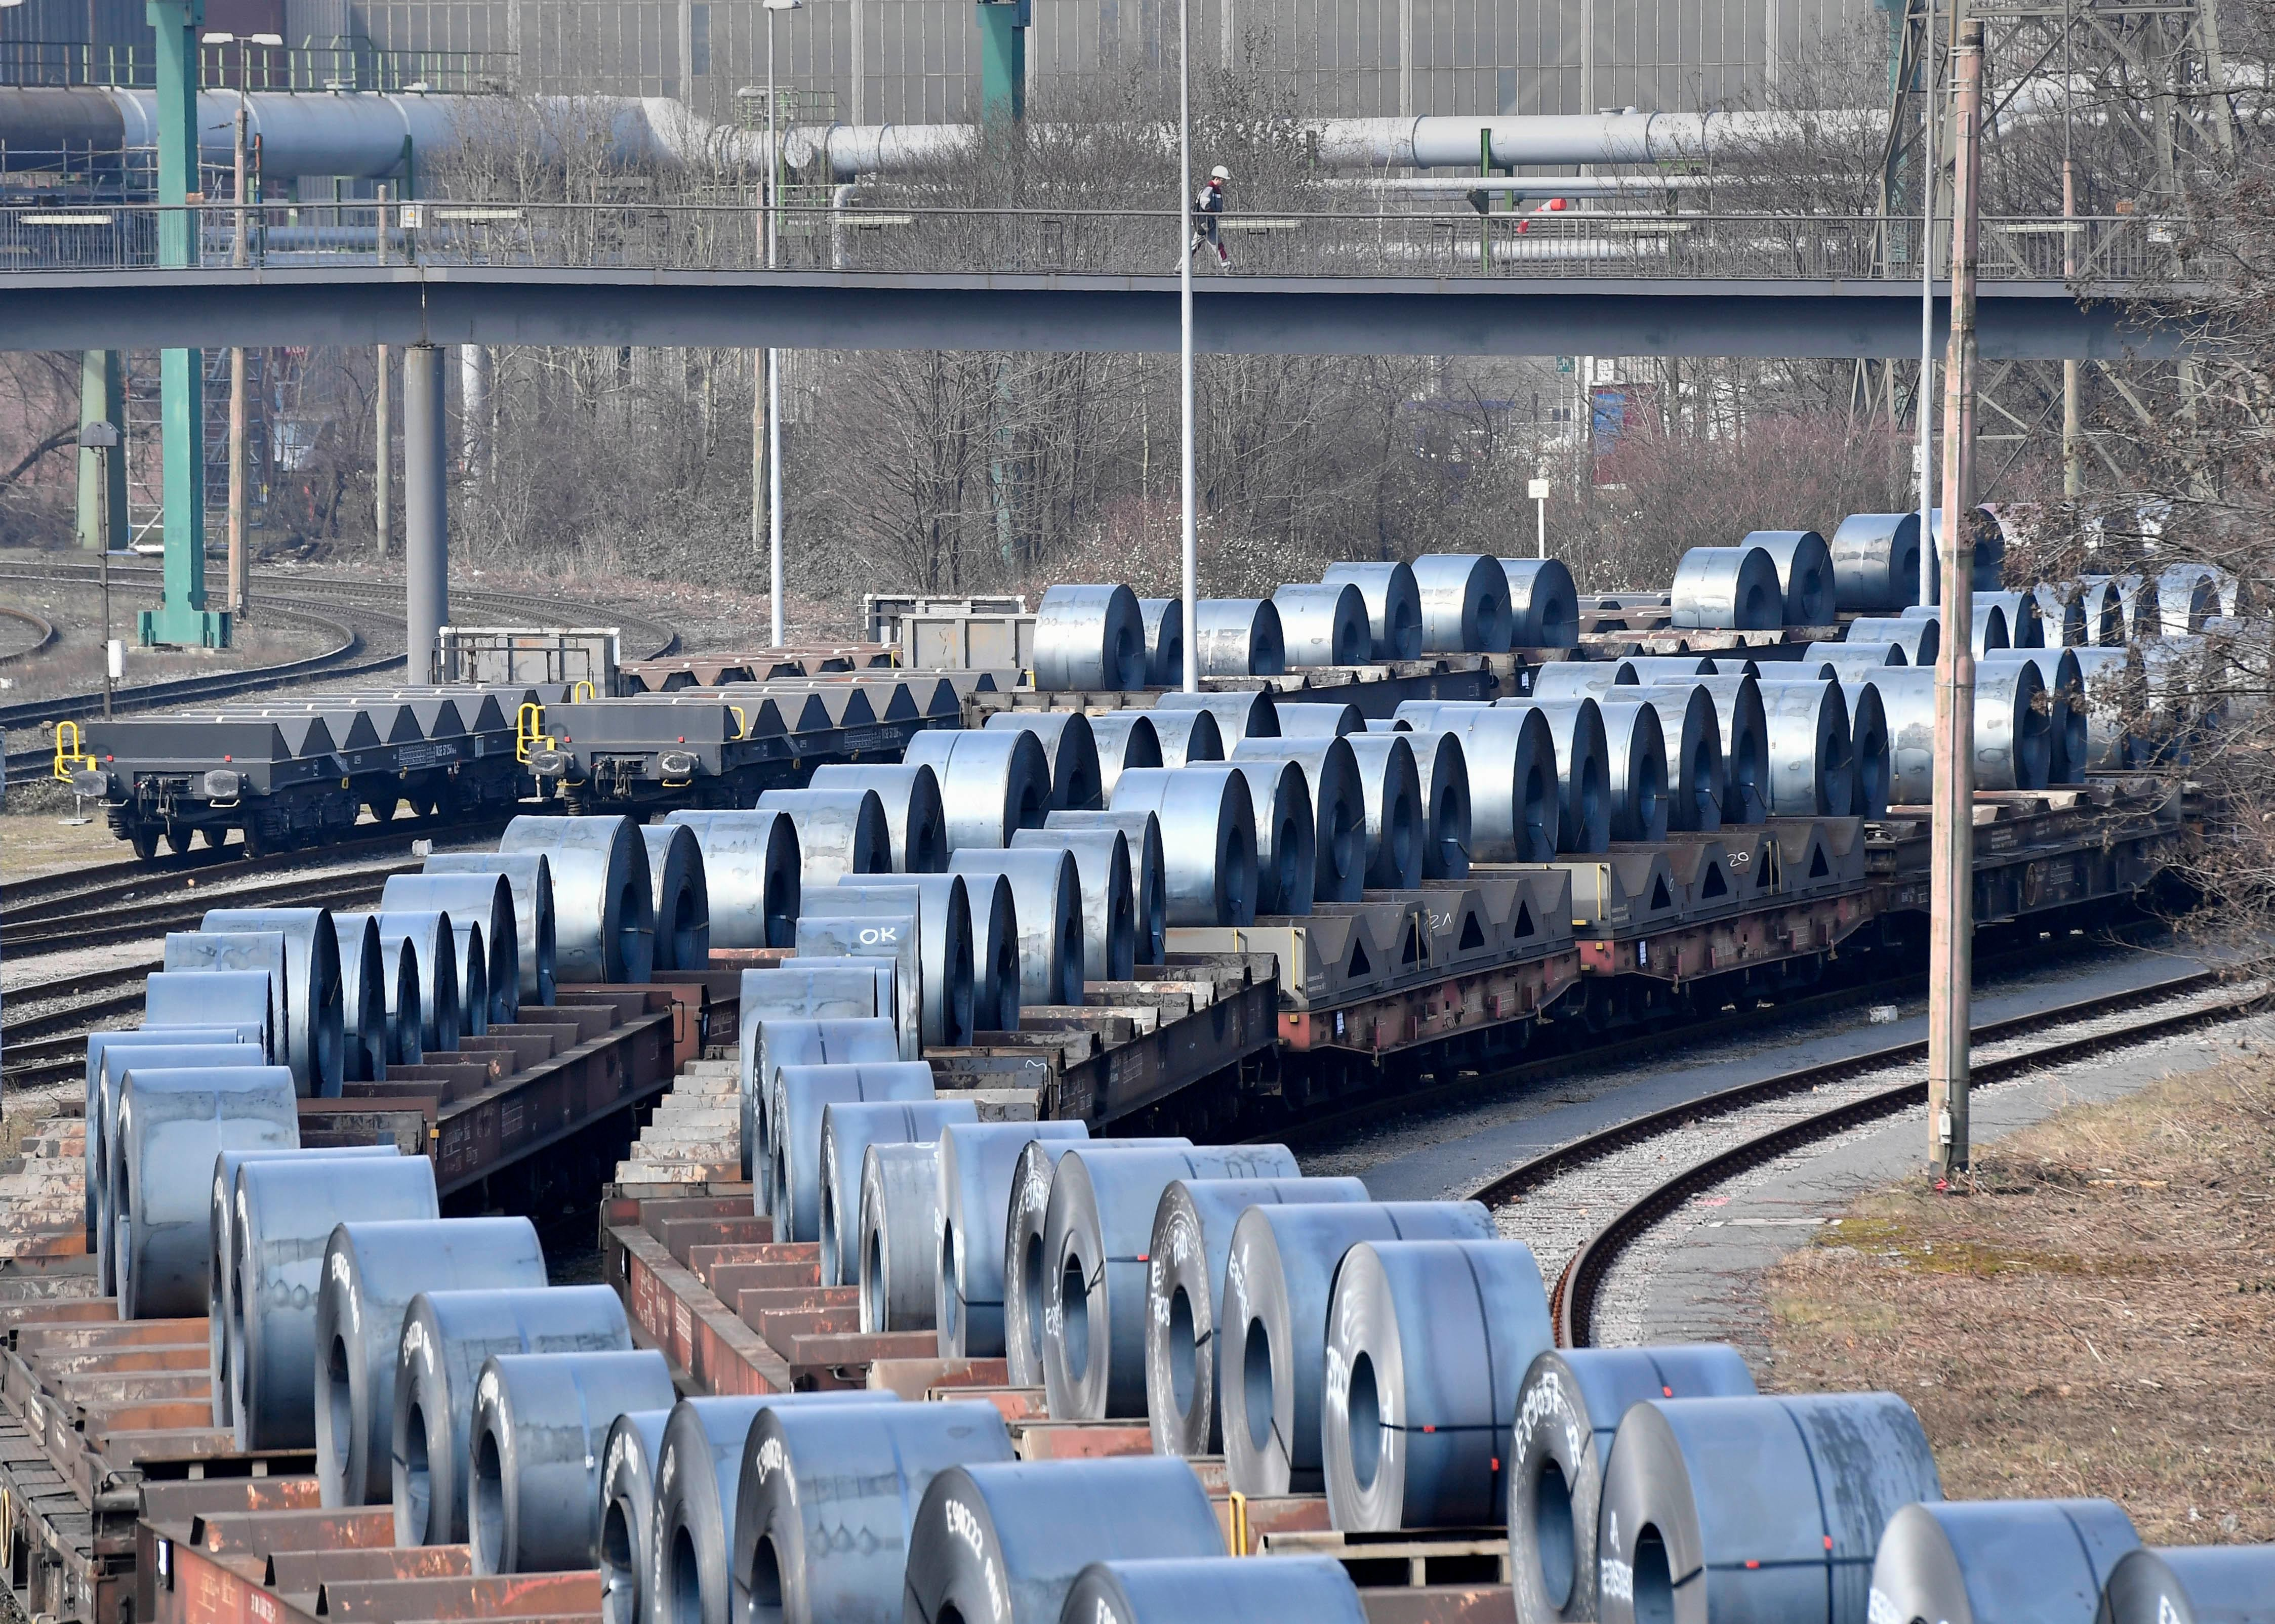 Steel coils sit on wagons when leaving the thyssenkrupp steel factory in Duisburg Germany & White House: No exemptions from steel aluminum tariffs